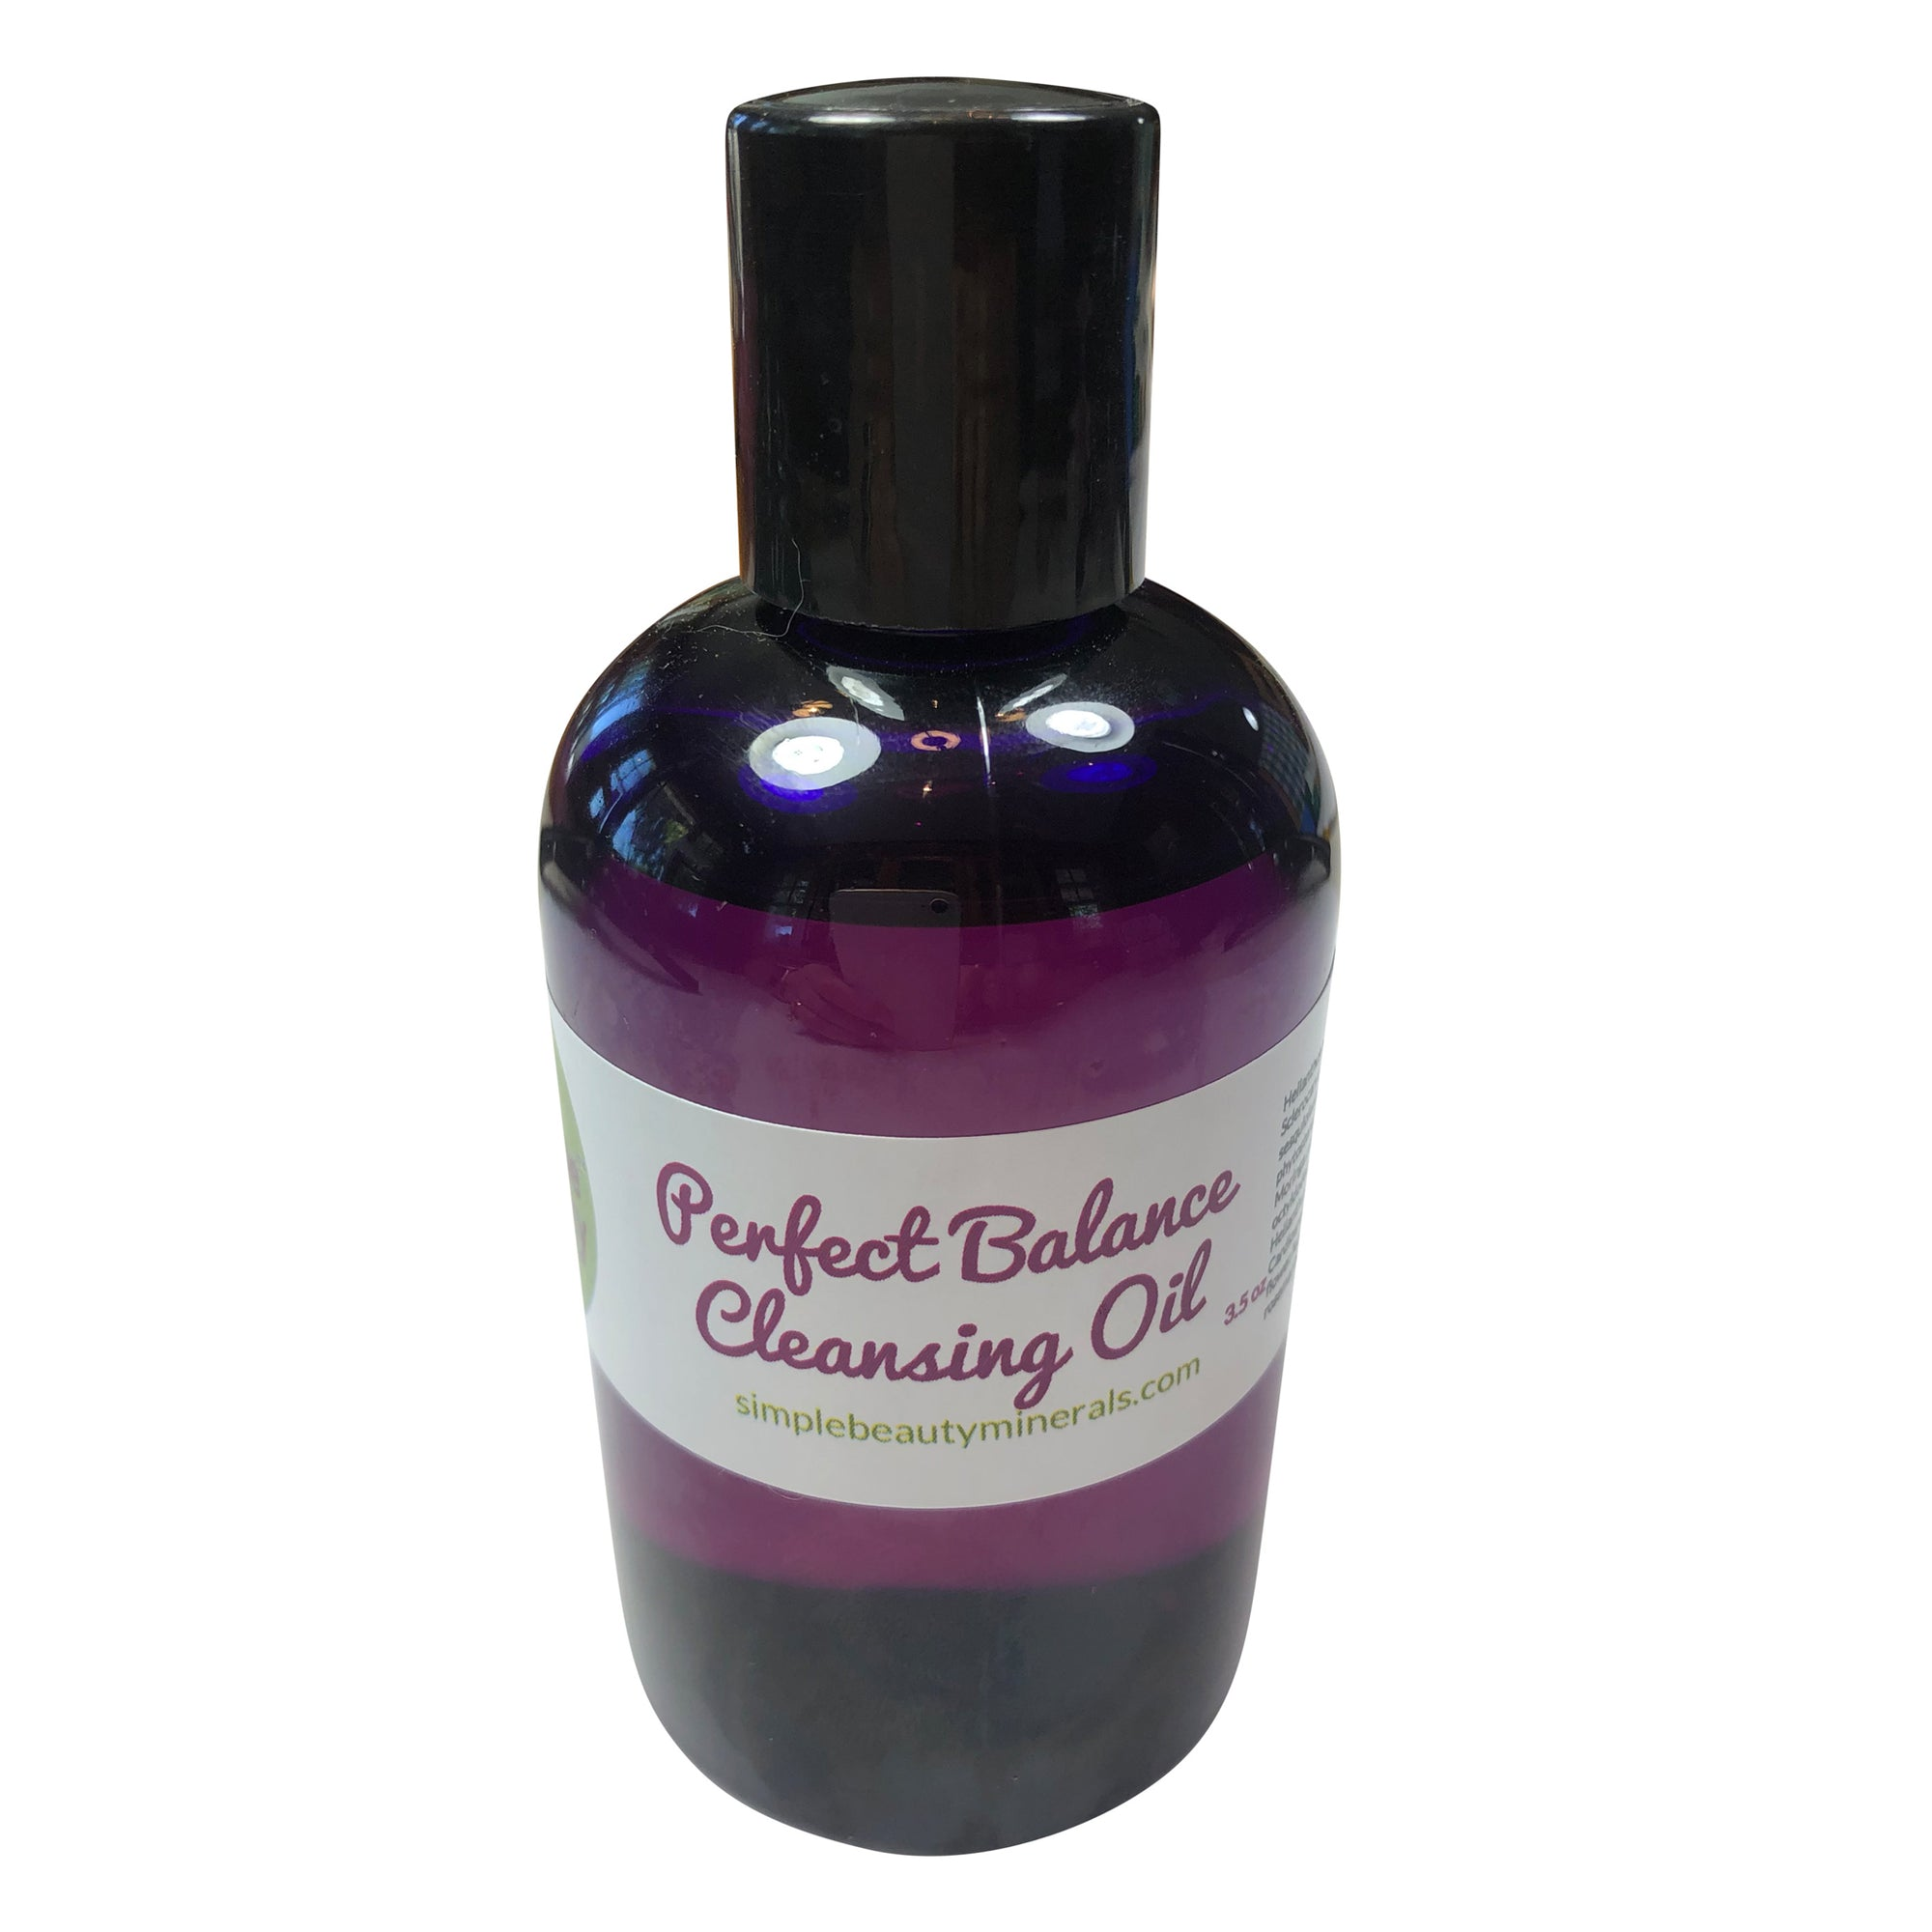 New! Perfect Balance Cleansing Oil